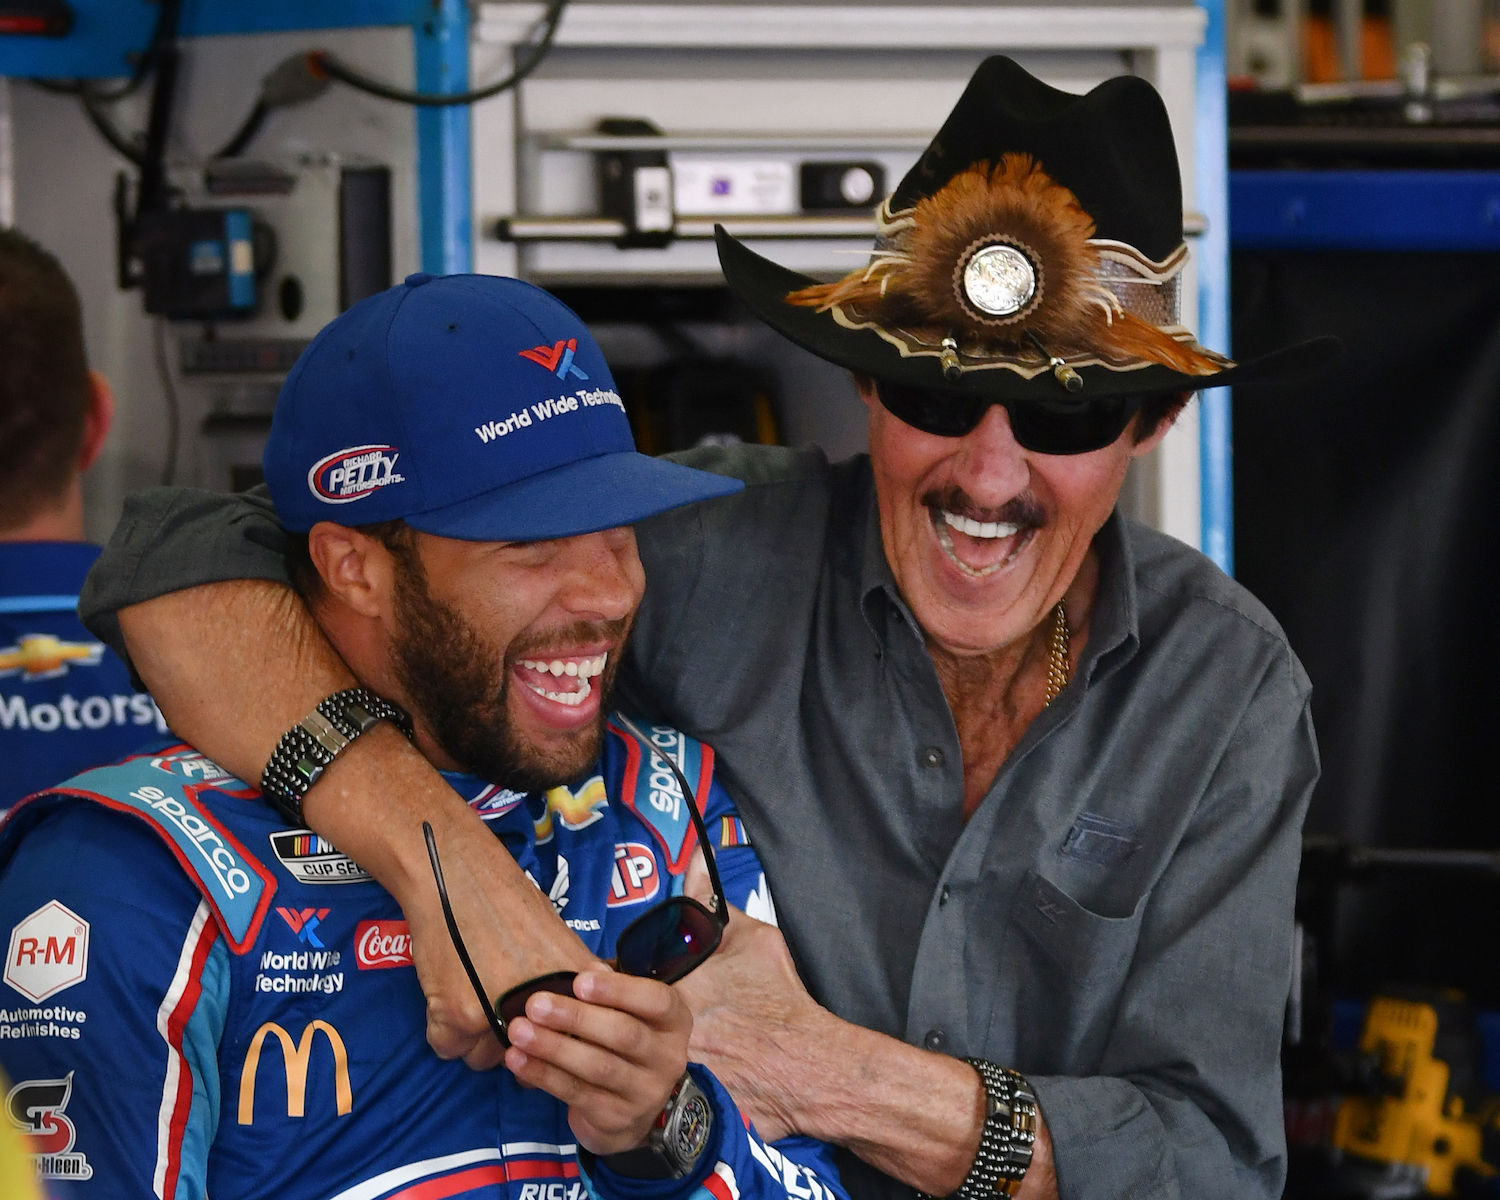 NASCAR Cup Series driver Bubba Wallace with car owner Richard Petty